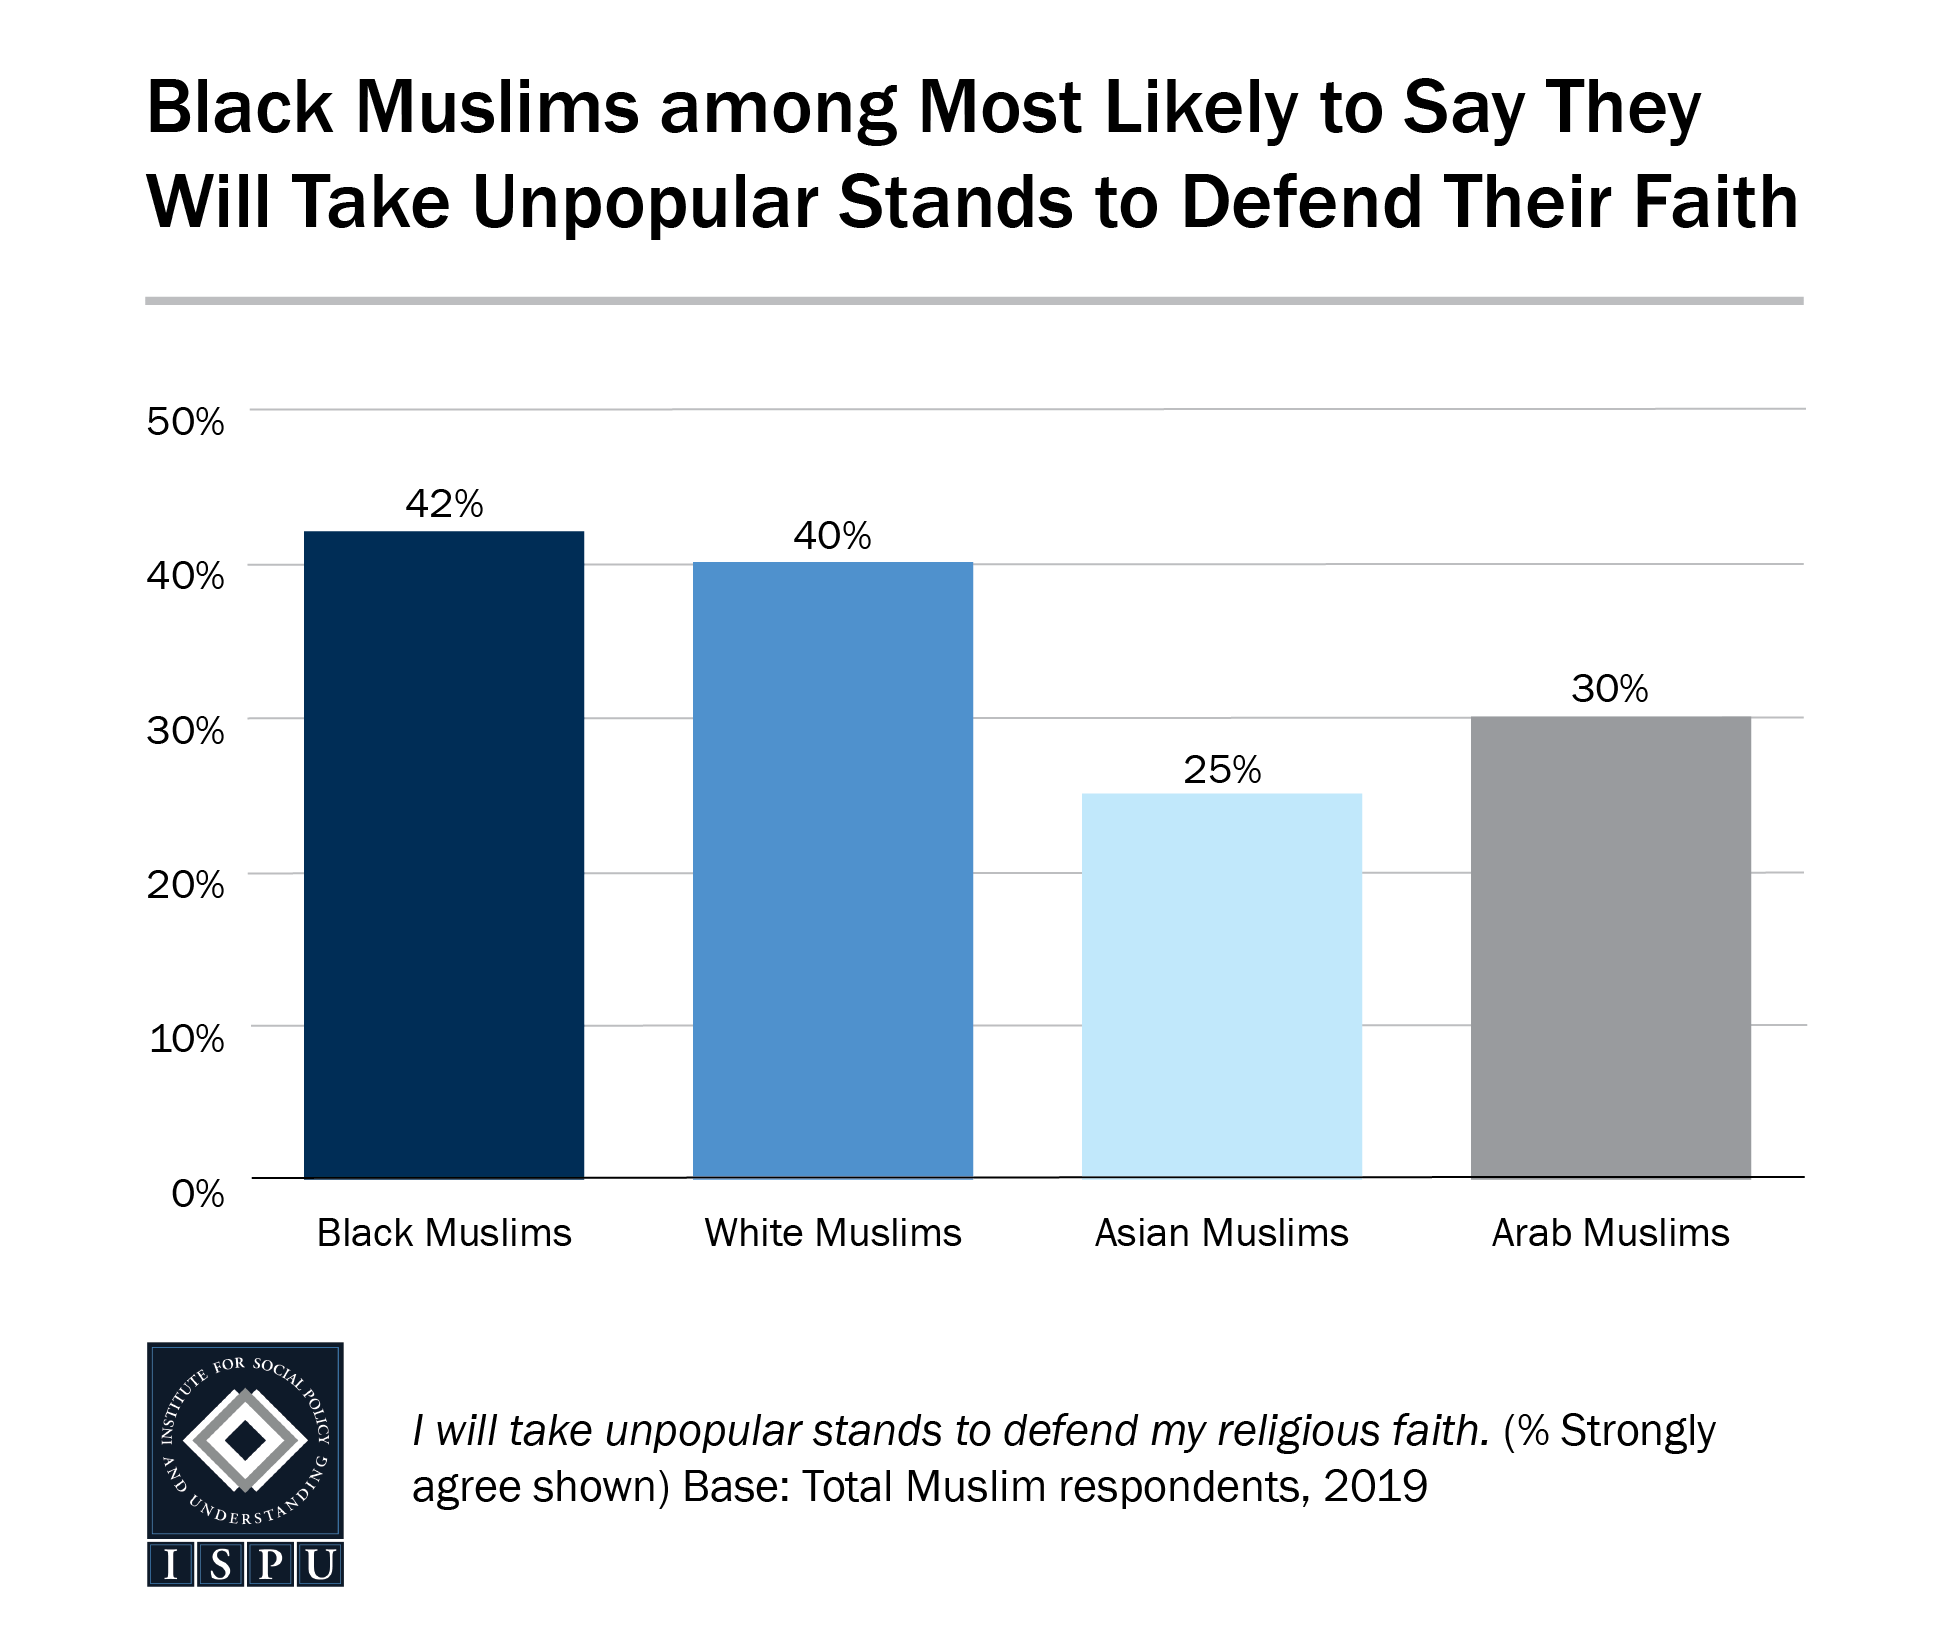 A bar graph showing that Black Muslims are among the most likely to say they will take unpopular stands to defend their faith